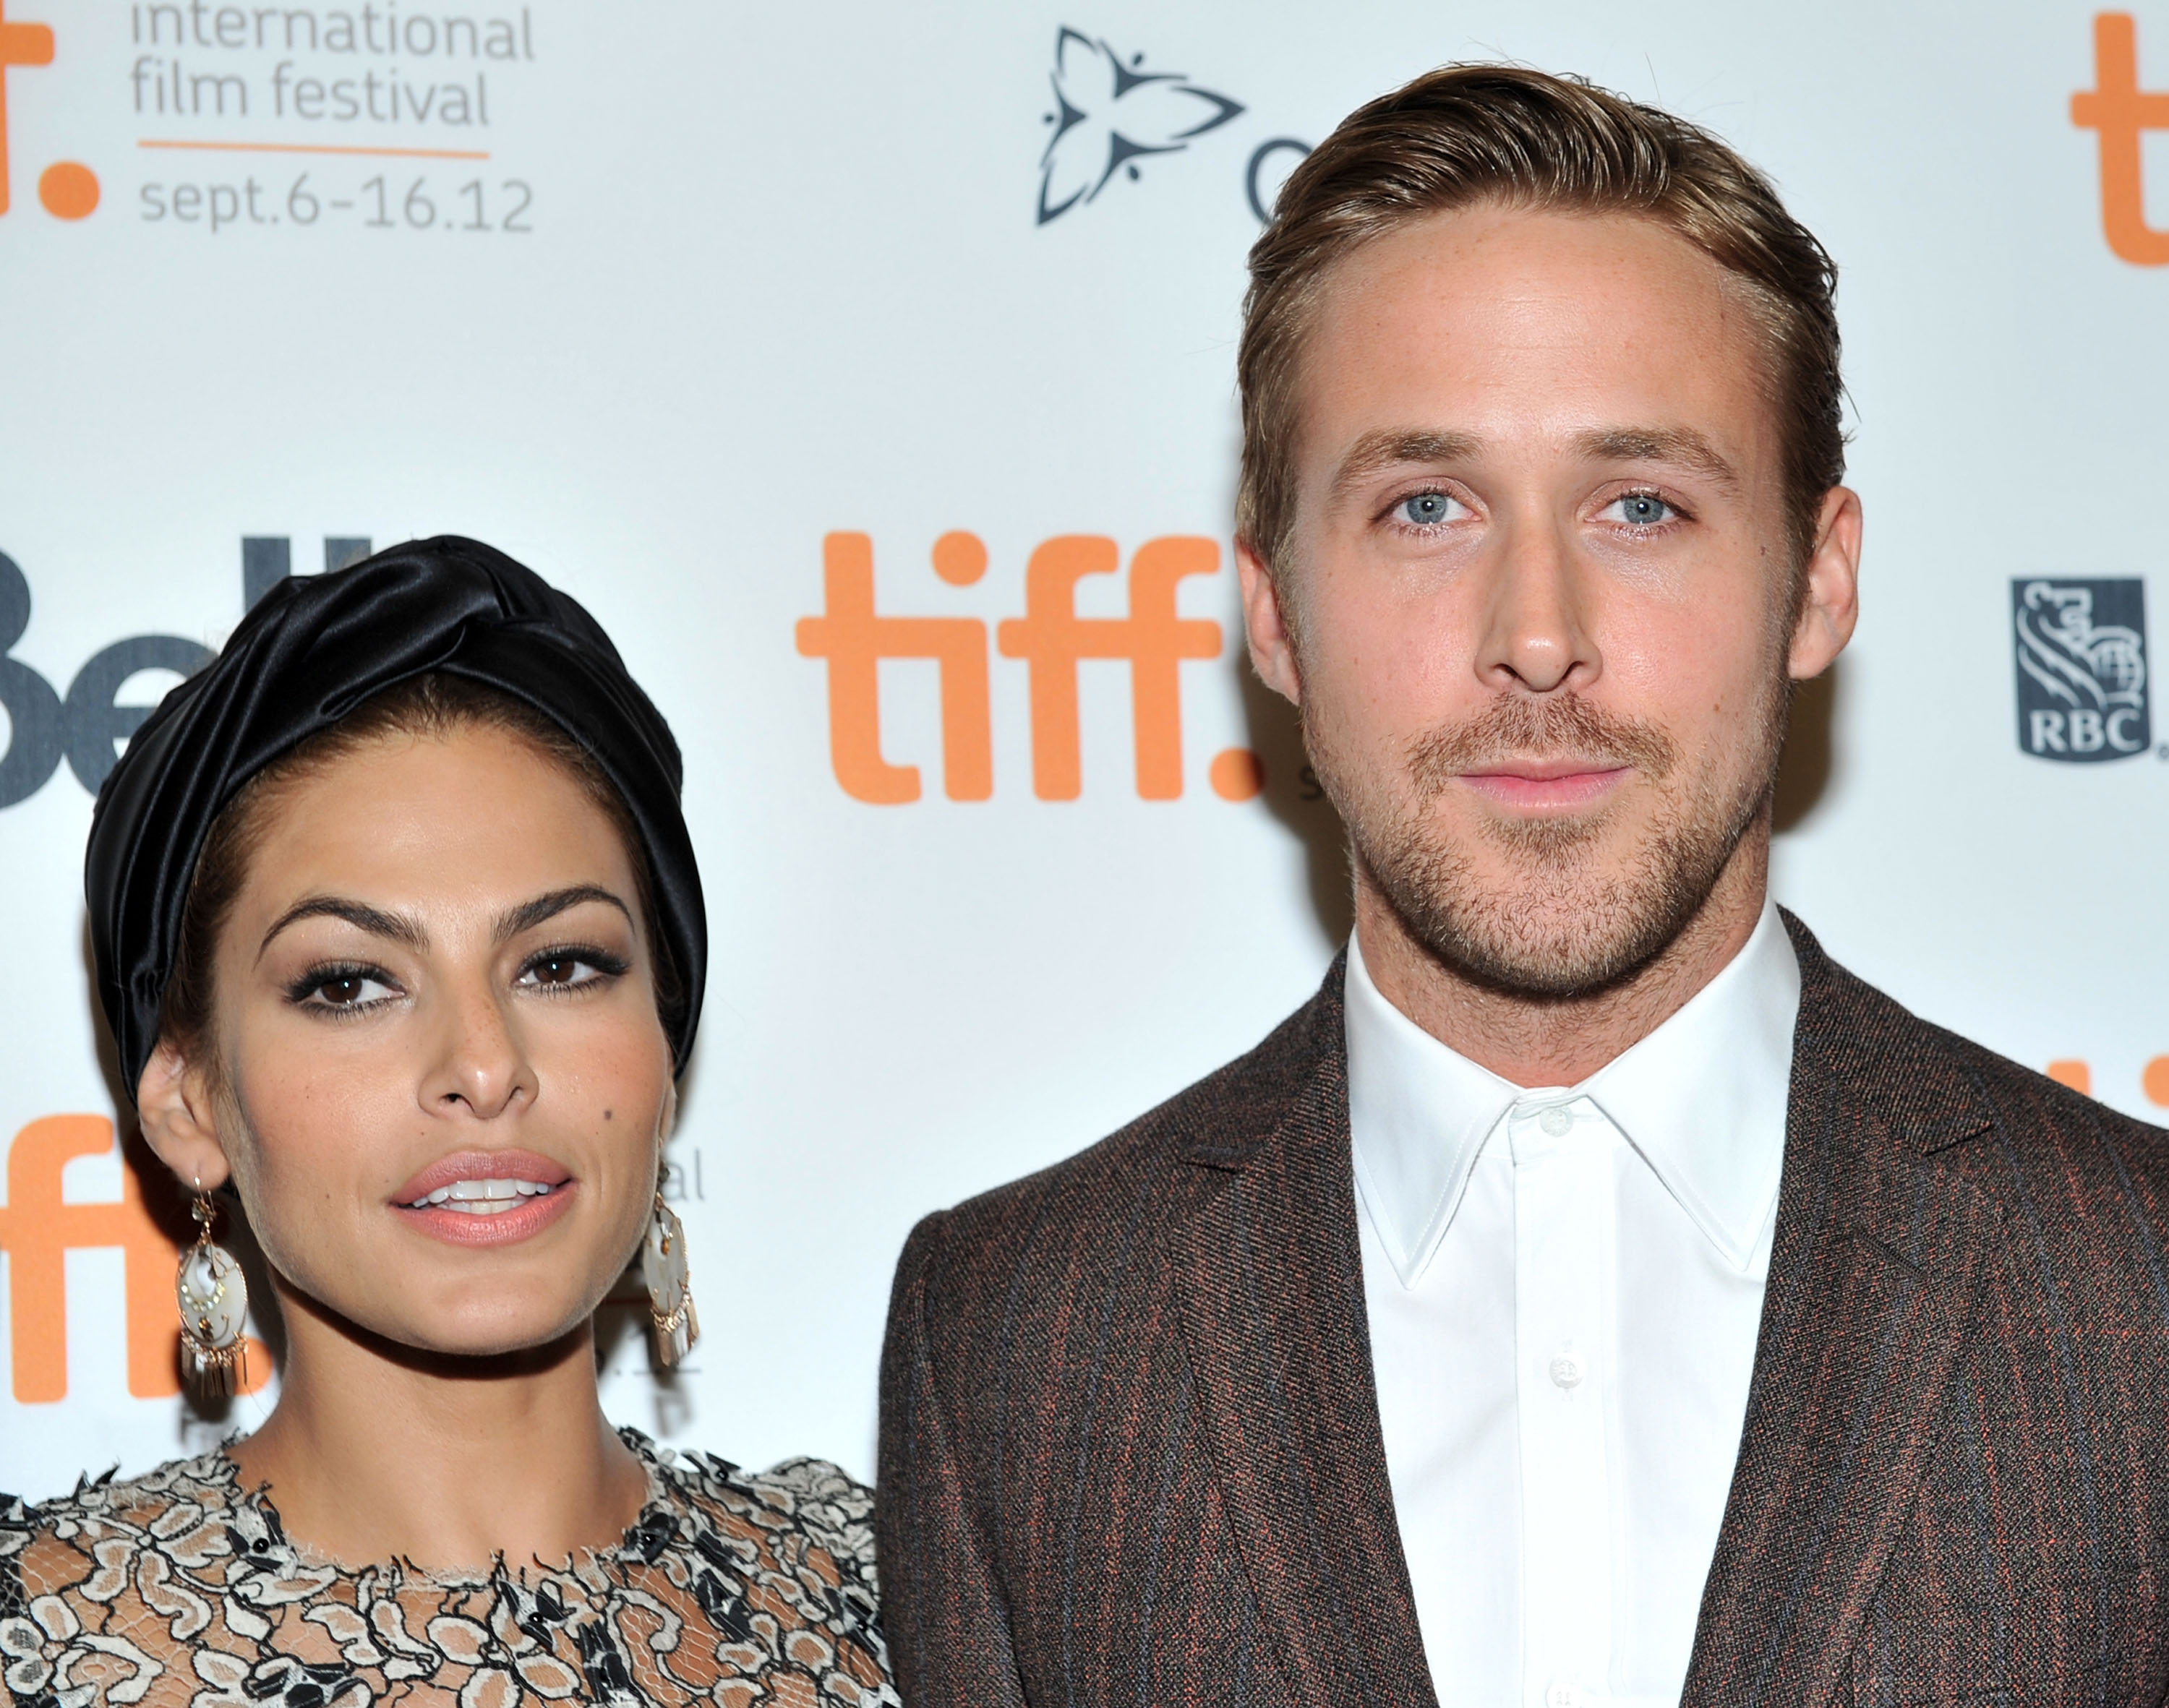 Rumor has it Ryan Gosling and Eva Mendes secretly married, so social media went wild